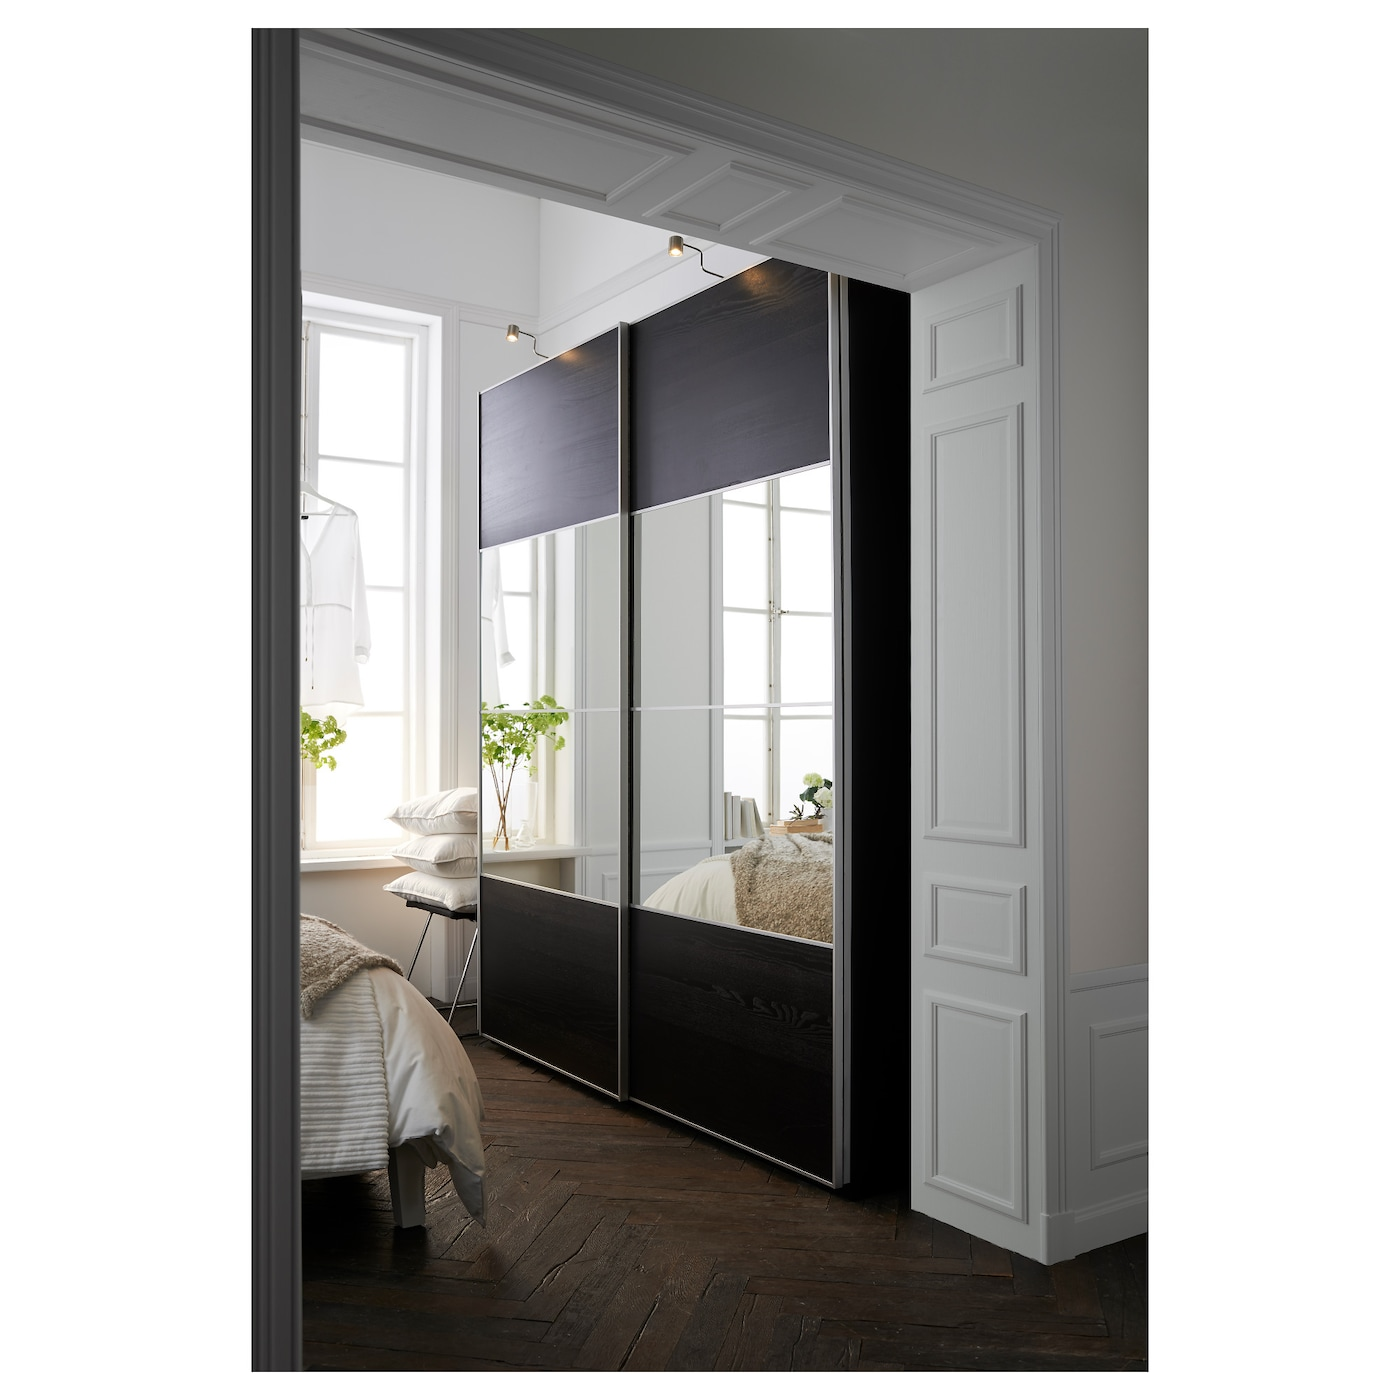 Pax wardrobe black brown auli ilseng 200x66x236 cm ikea for Armoire coulissante solde